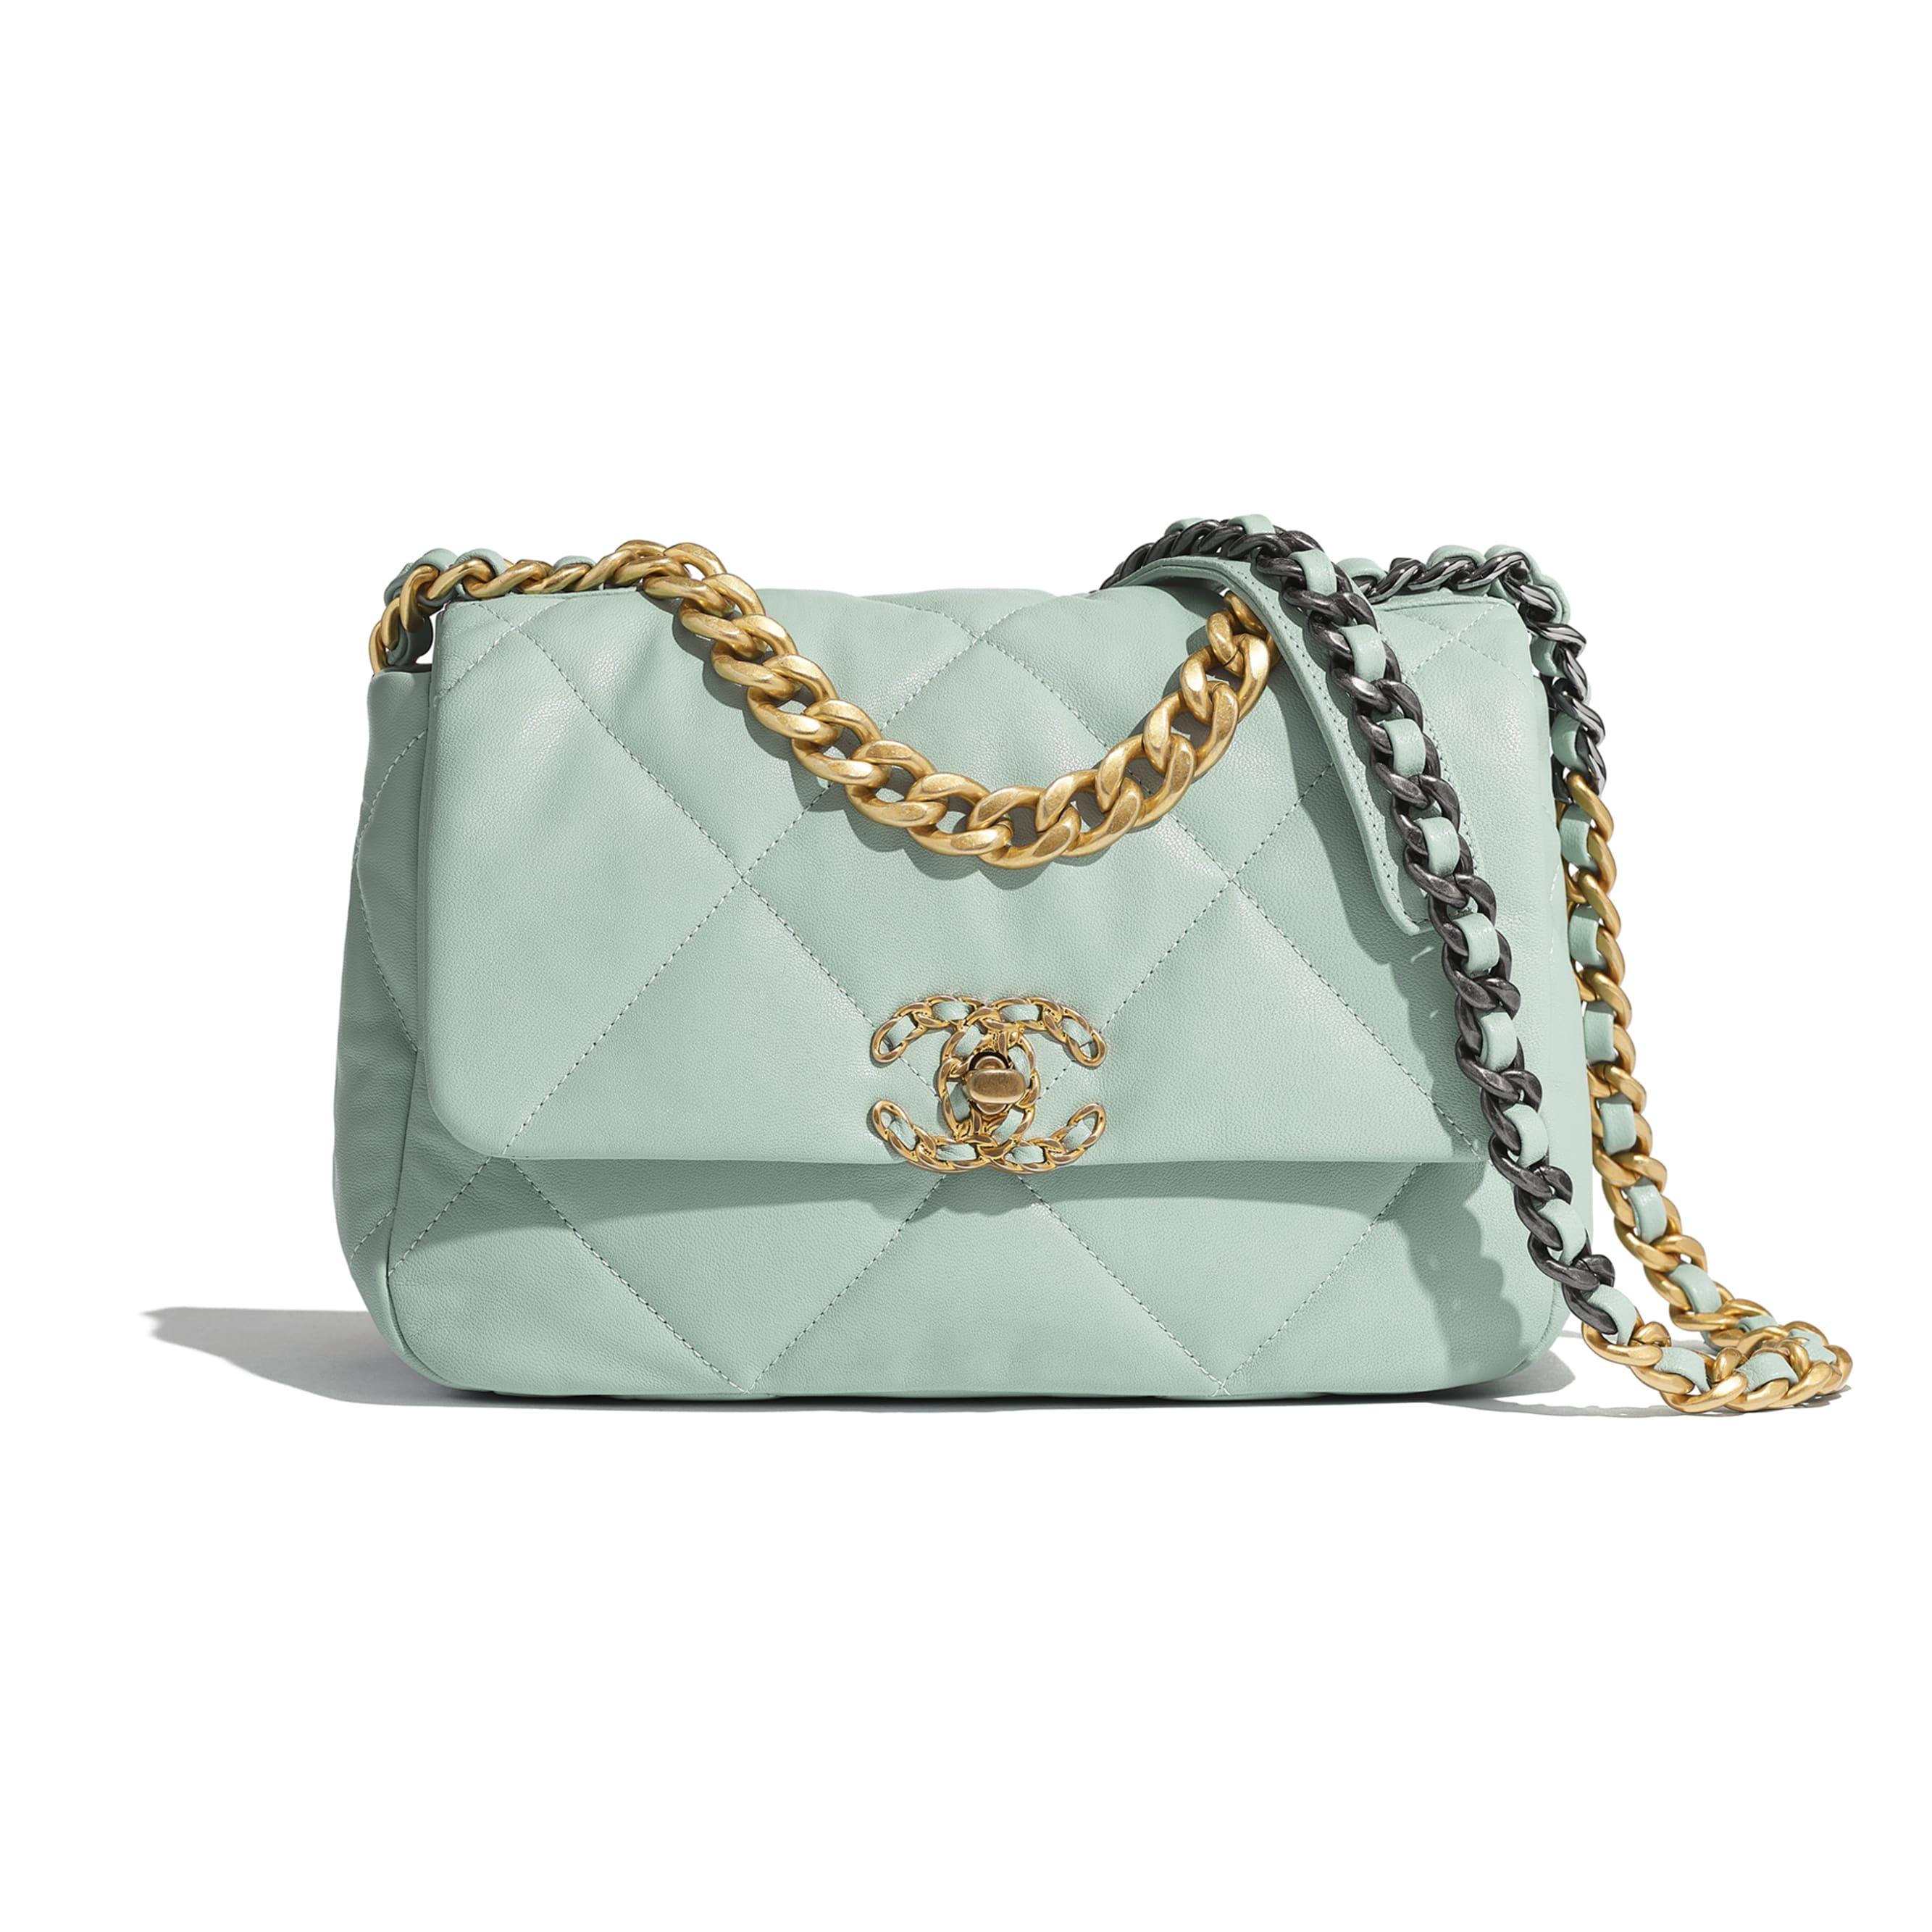 CHANEL 19 Flap Bag - Blue - Lambskin, Gold-Tone, Silver-Tone & Ruthenium-Finish Metal - Default view - see standard sized version